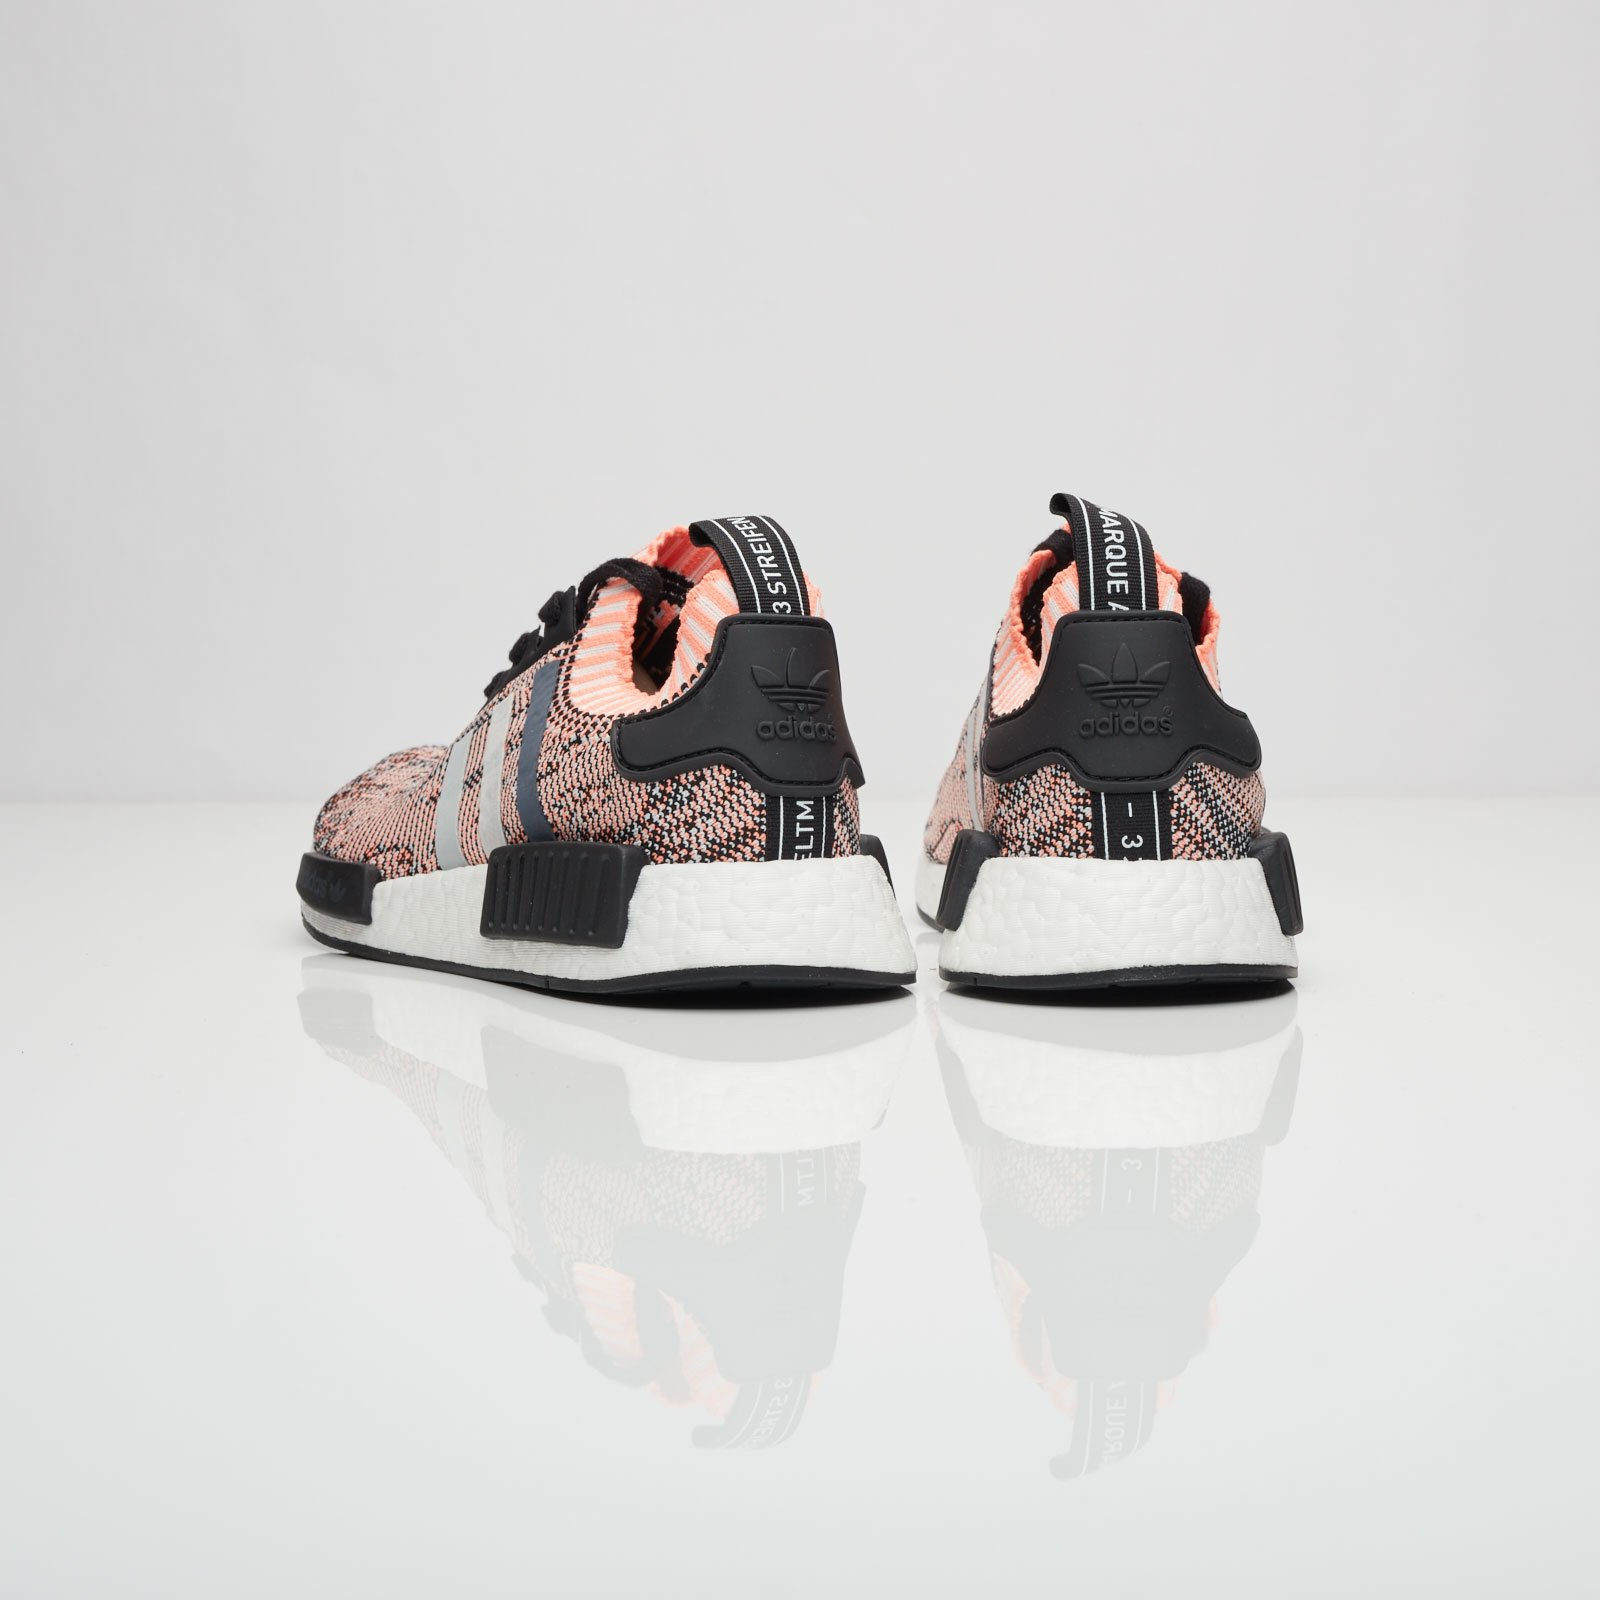 quality design bf83d 4bcce adidas NMD_R1 W PK - Bb2361 - Sneakersnstuff   sneakers ...